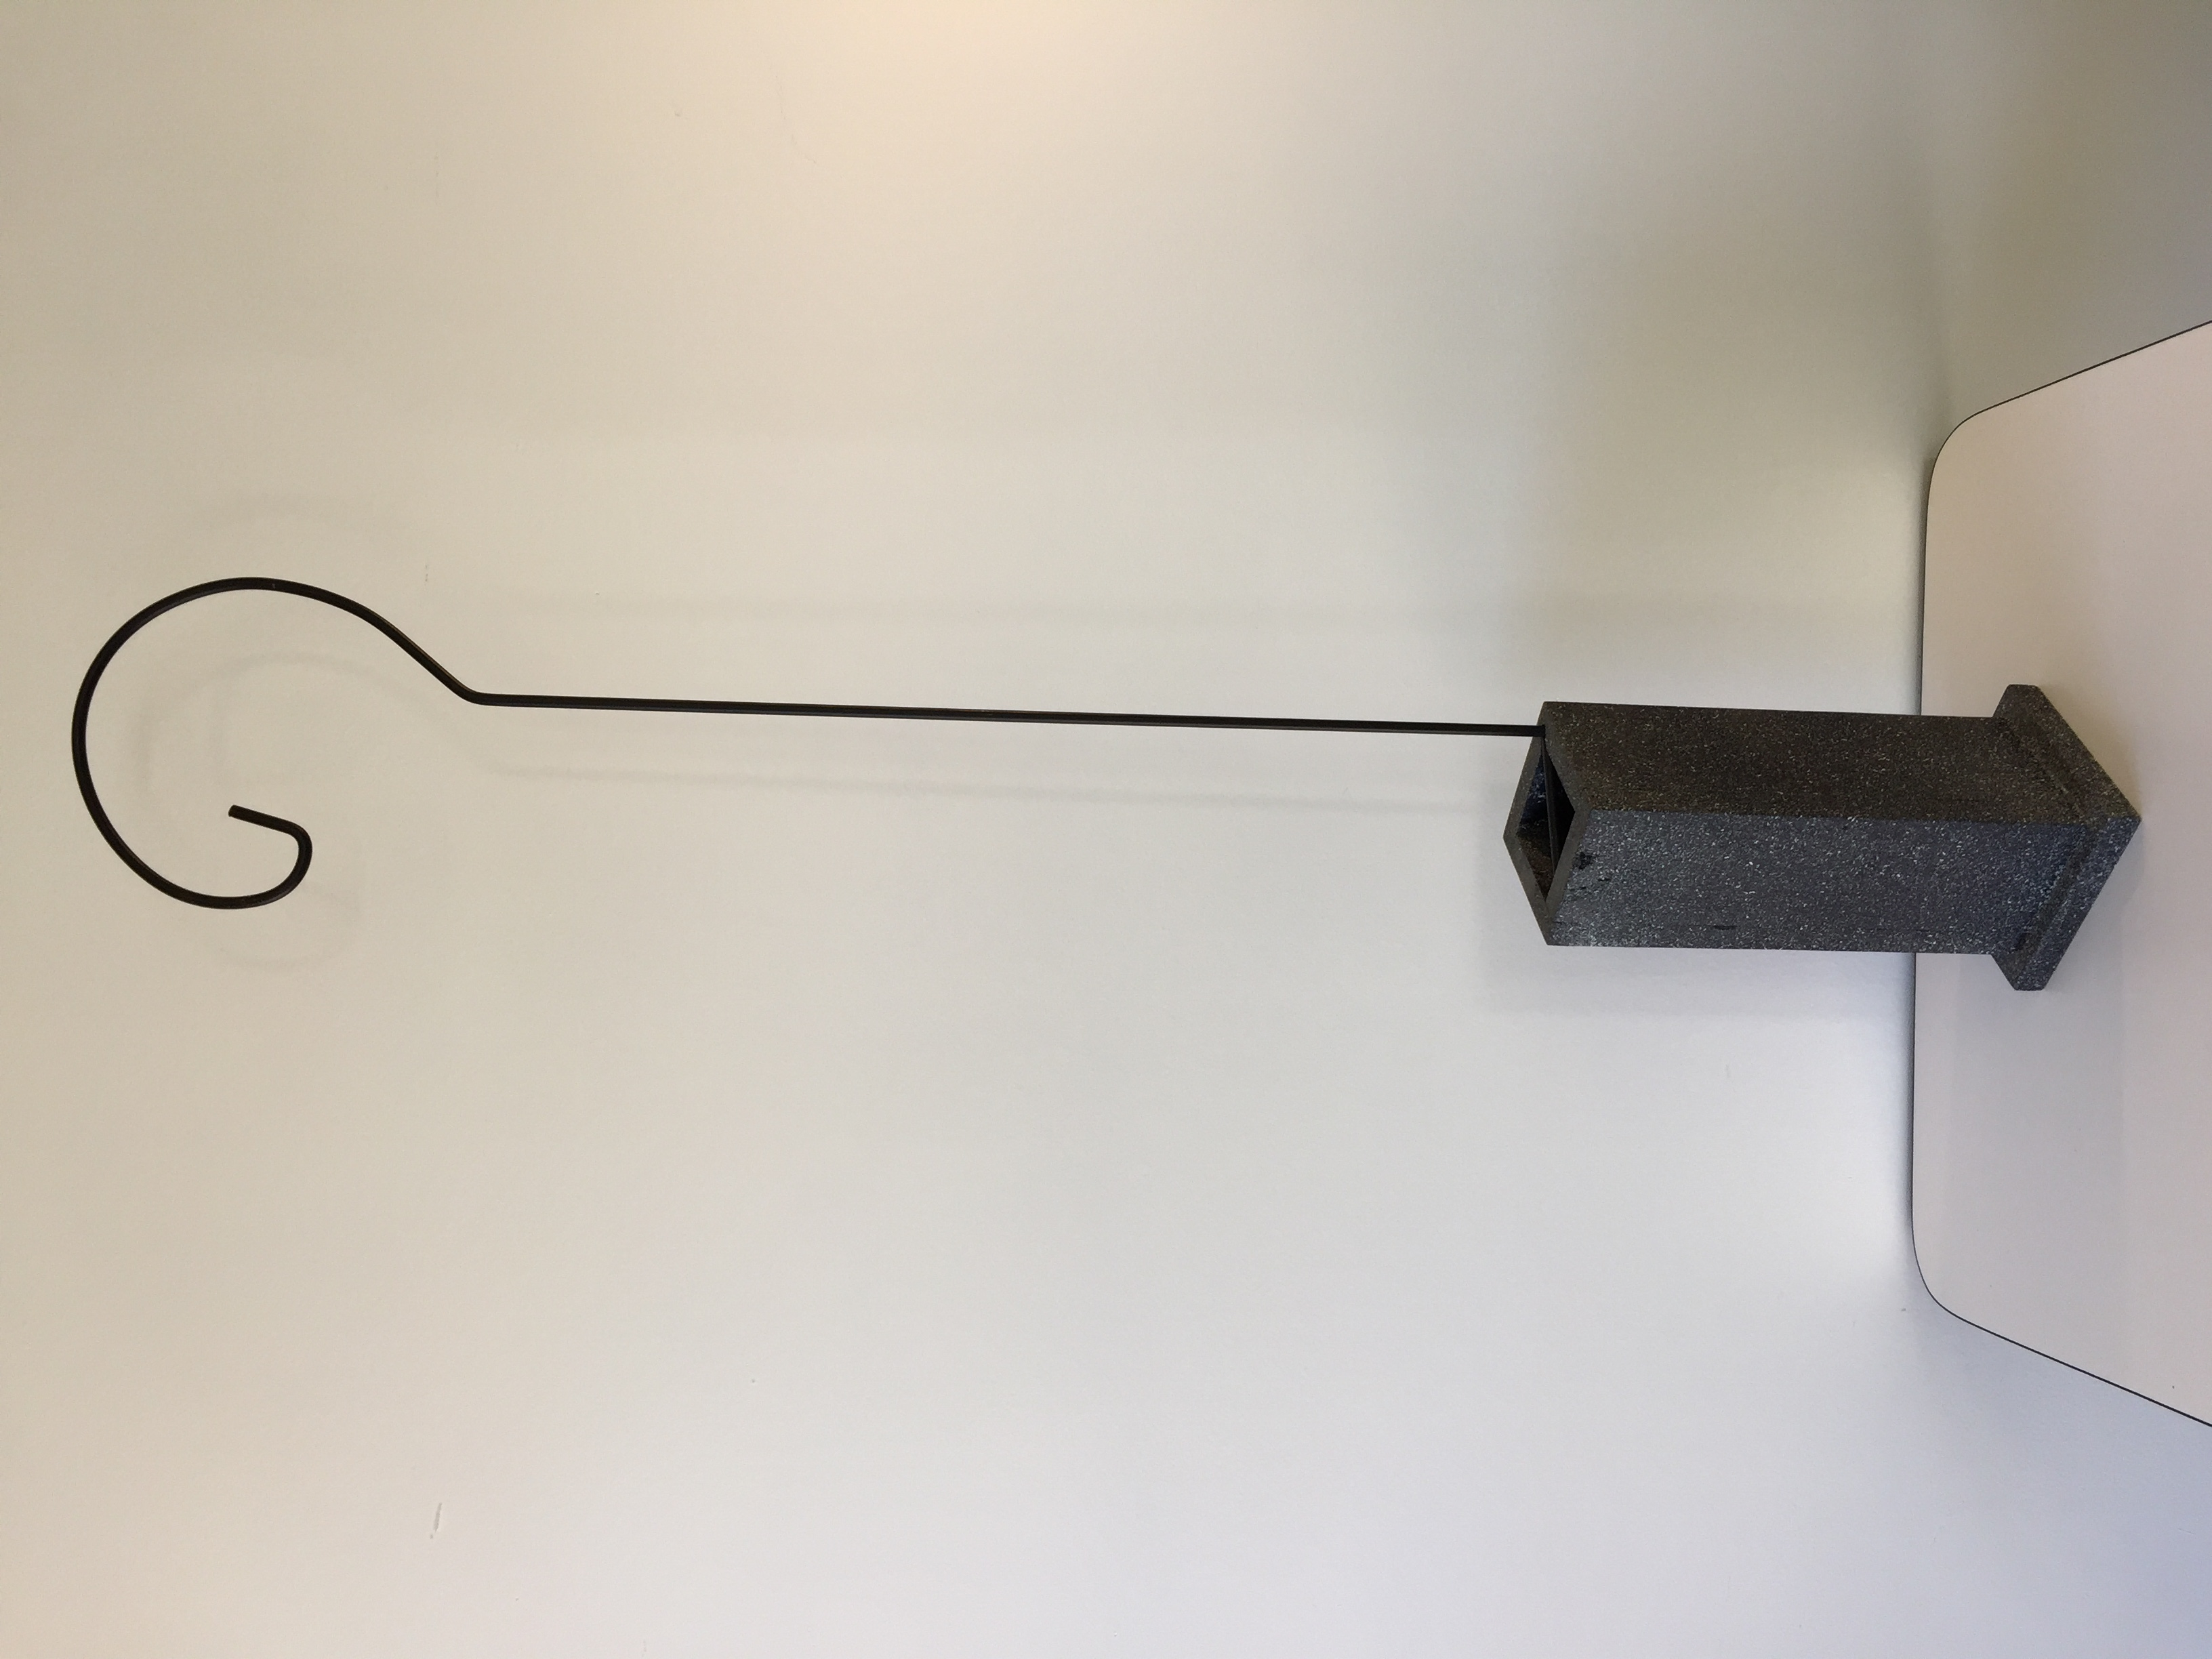 Wood Base for Small Hooks